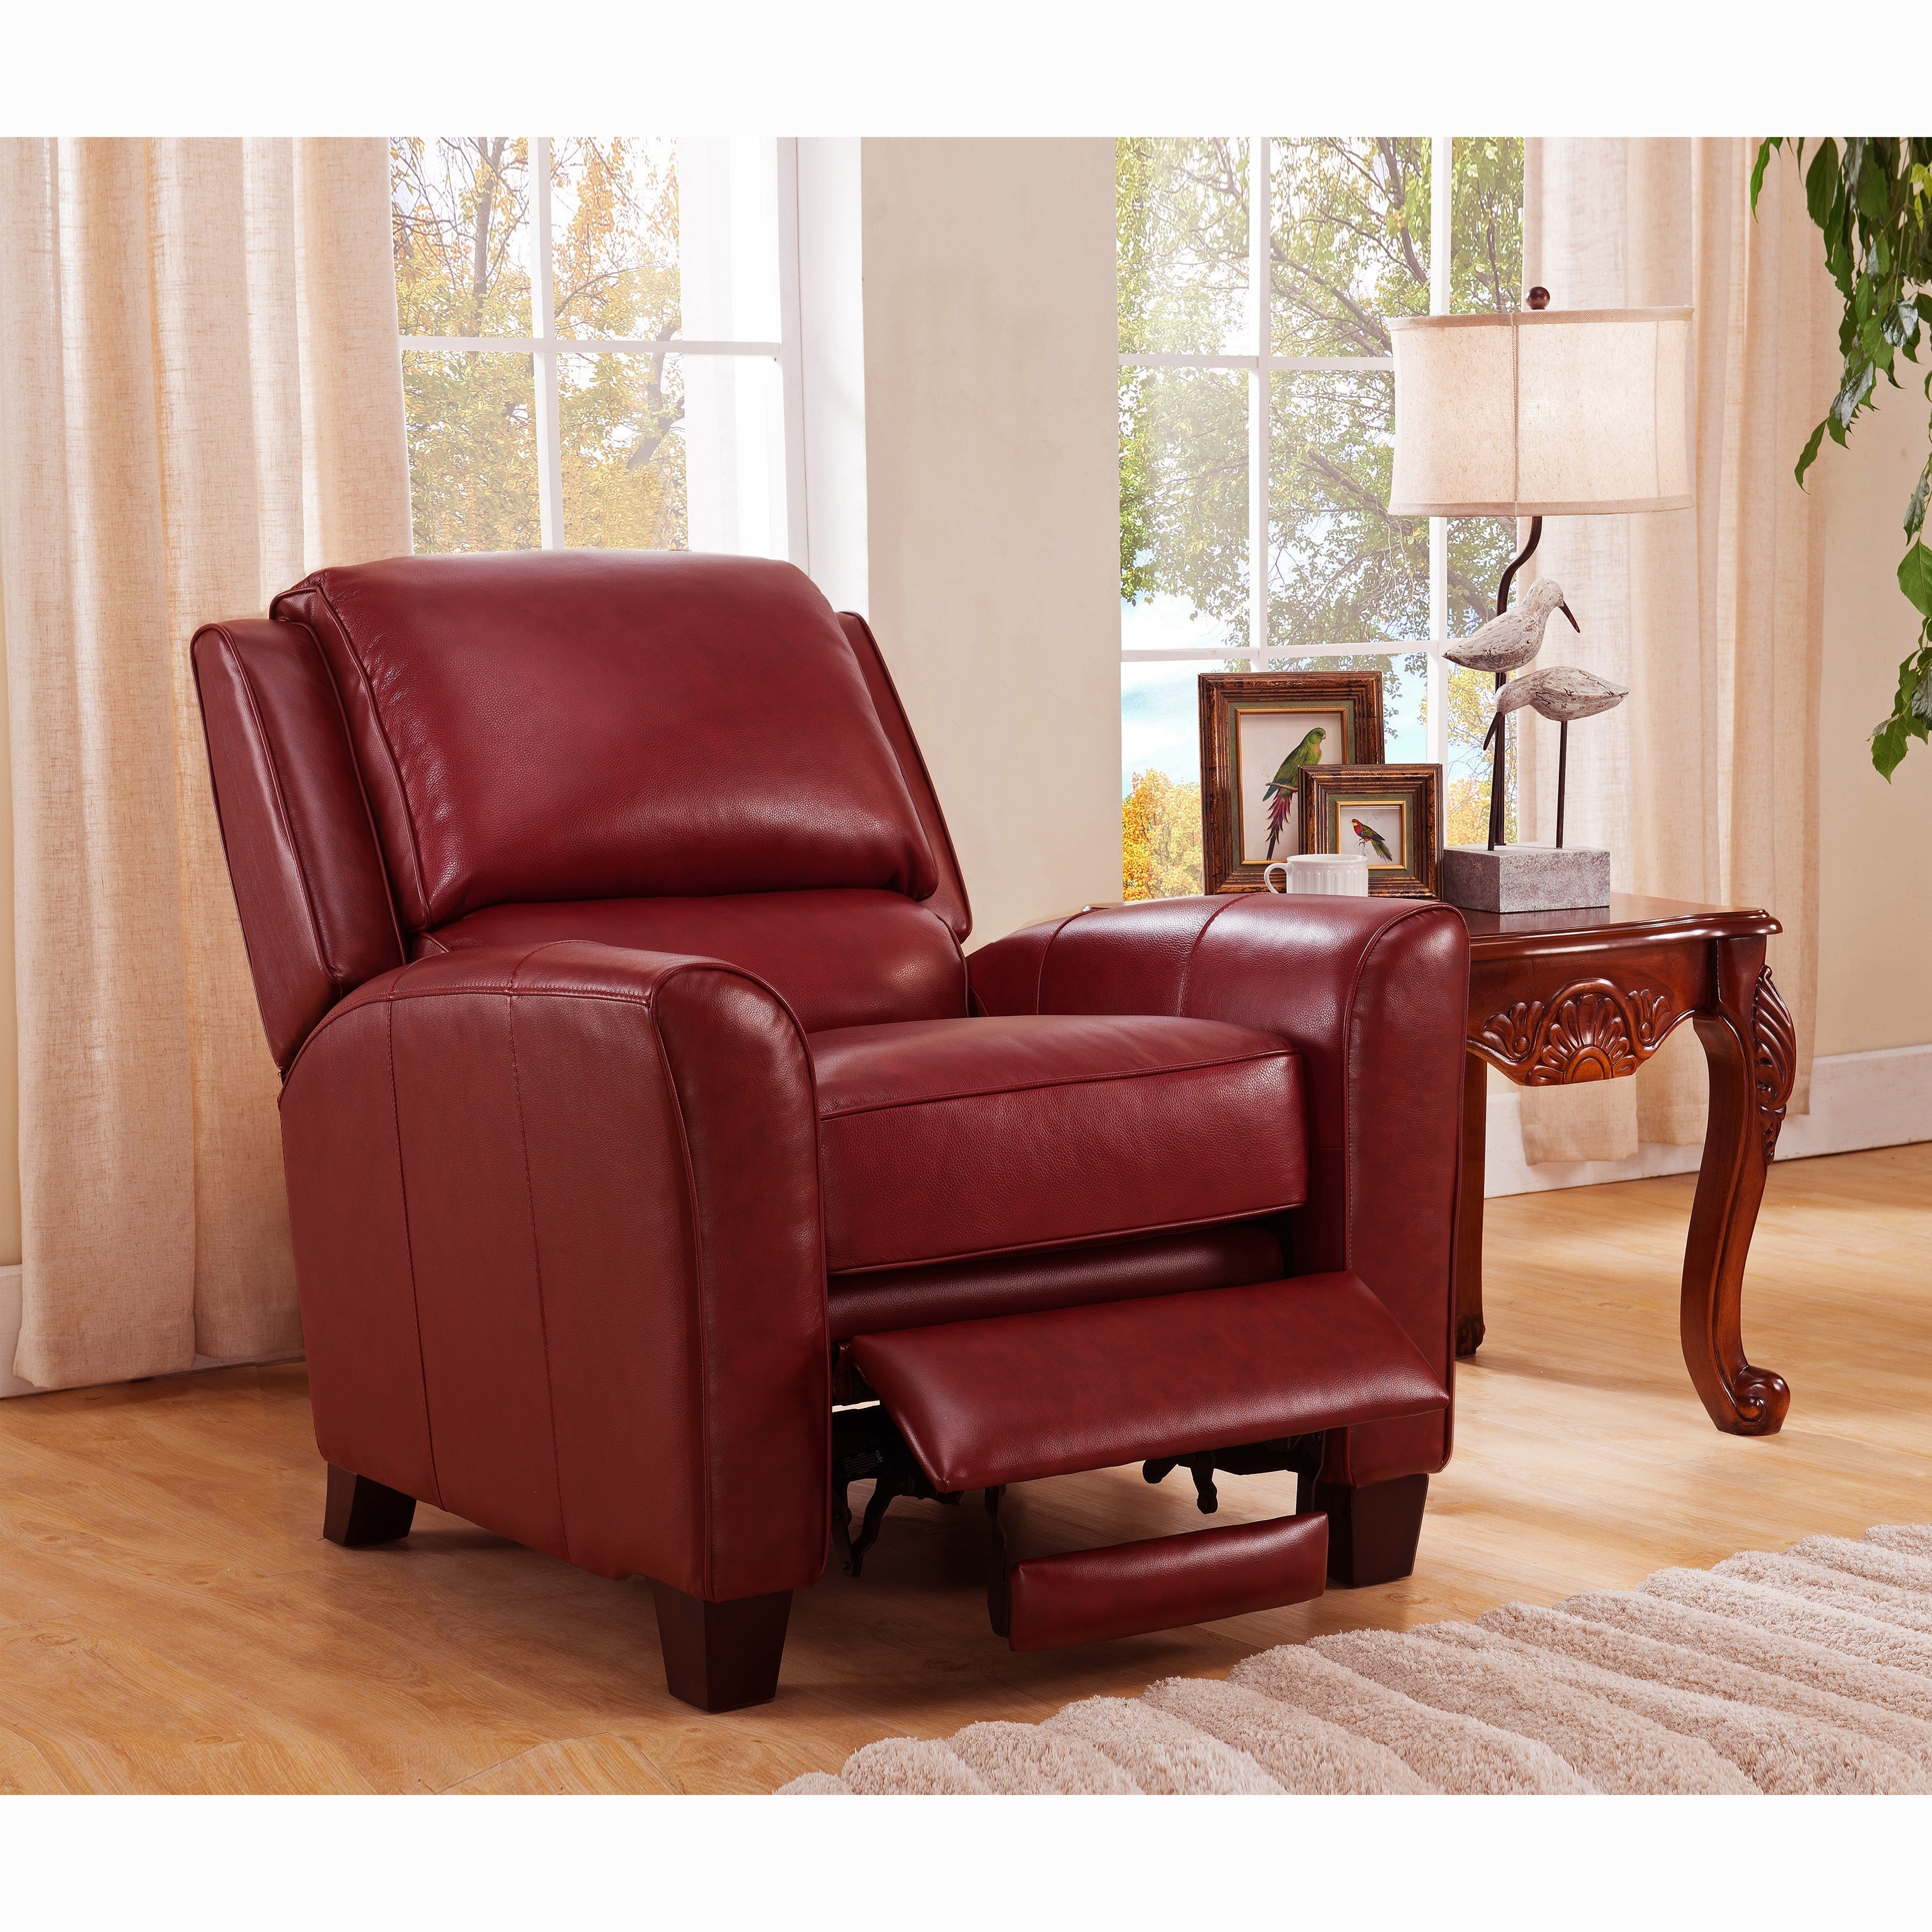 red recliner chairs posture chair ball shop carnegie crimson premium top grain leather on sale free shipping today overstock com 10858753